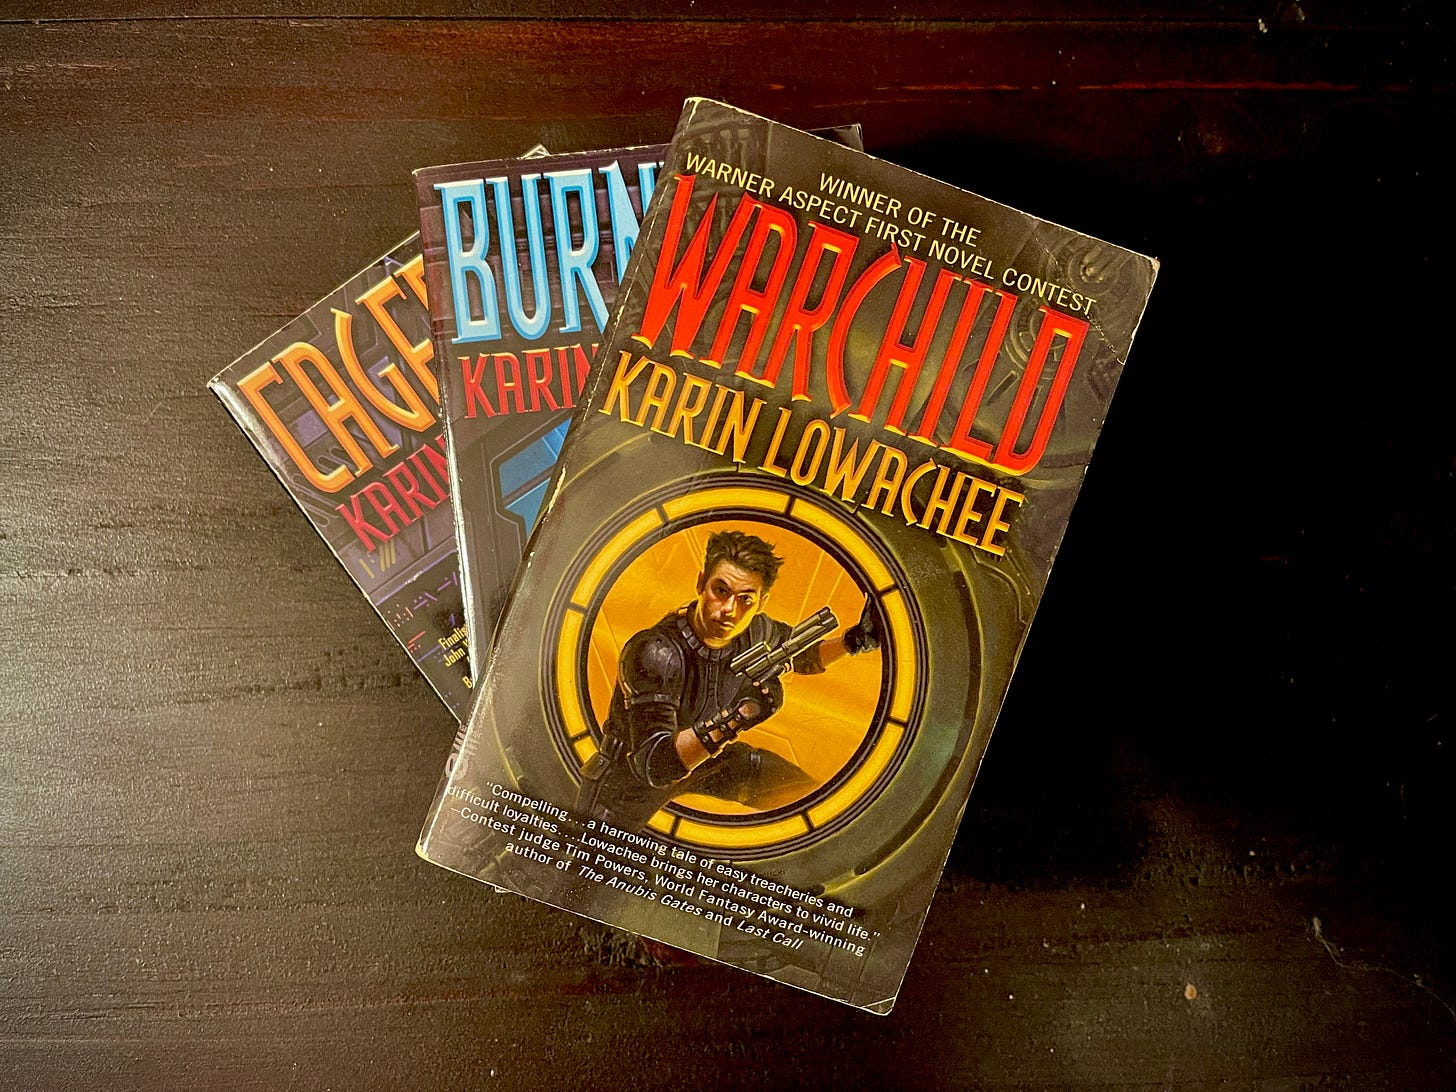 Three books in a spiral stack. The book on the top is Warchild by Karin Lowachee, and features a person on the cover stepping through a portal with a gun.